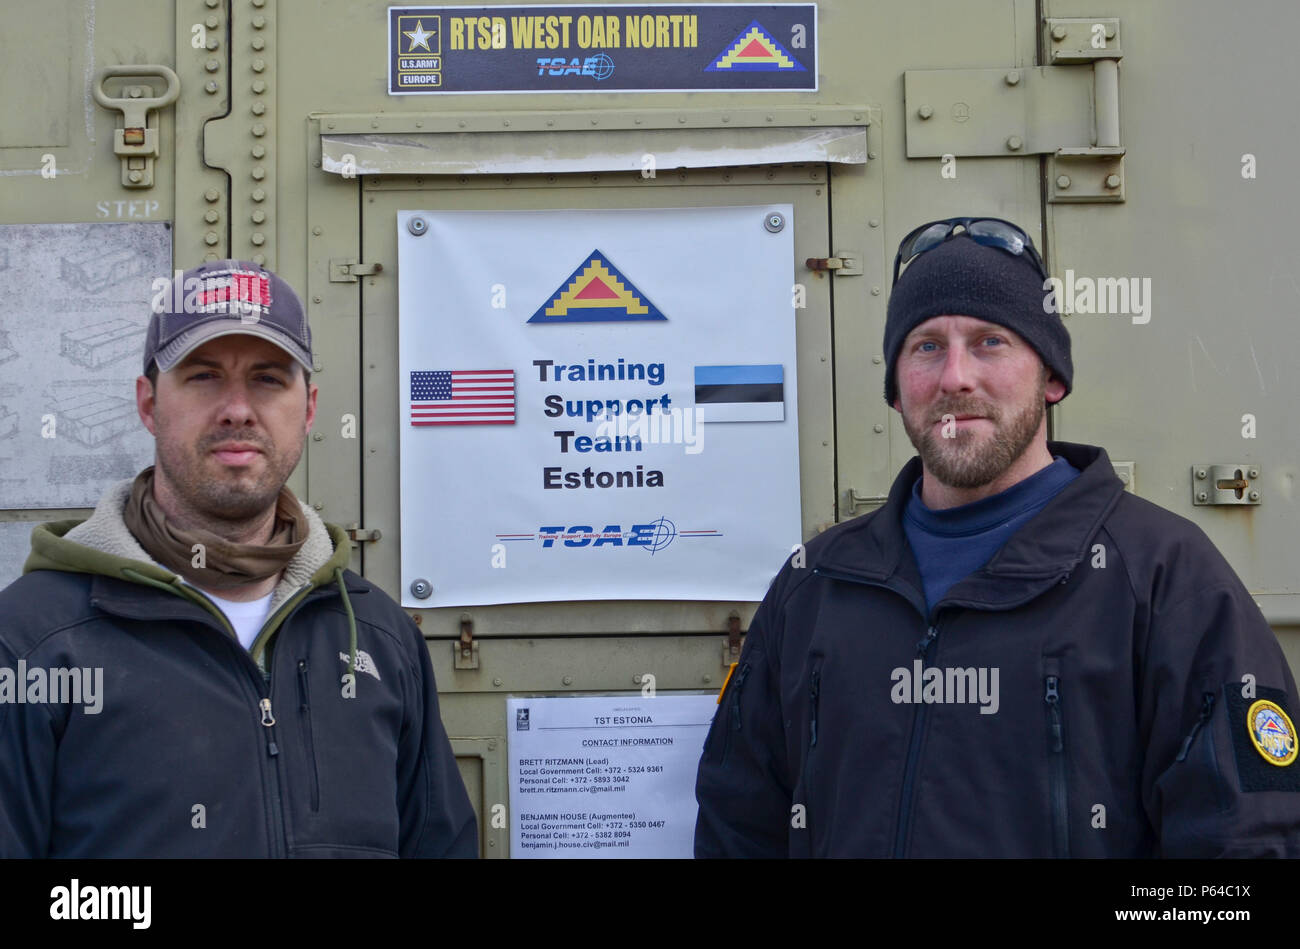 The U.S. Training Support Team in Estonia, Brett Ritzmann (right) and Benjamin House (left), make themselves available to answer questions during an open house at Tapa Military Base, Estonia, April 25, 2016. (U.S. Army Photo by Staff Sgt. Steven M. Colvin) - Stock Image